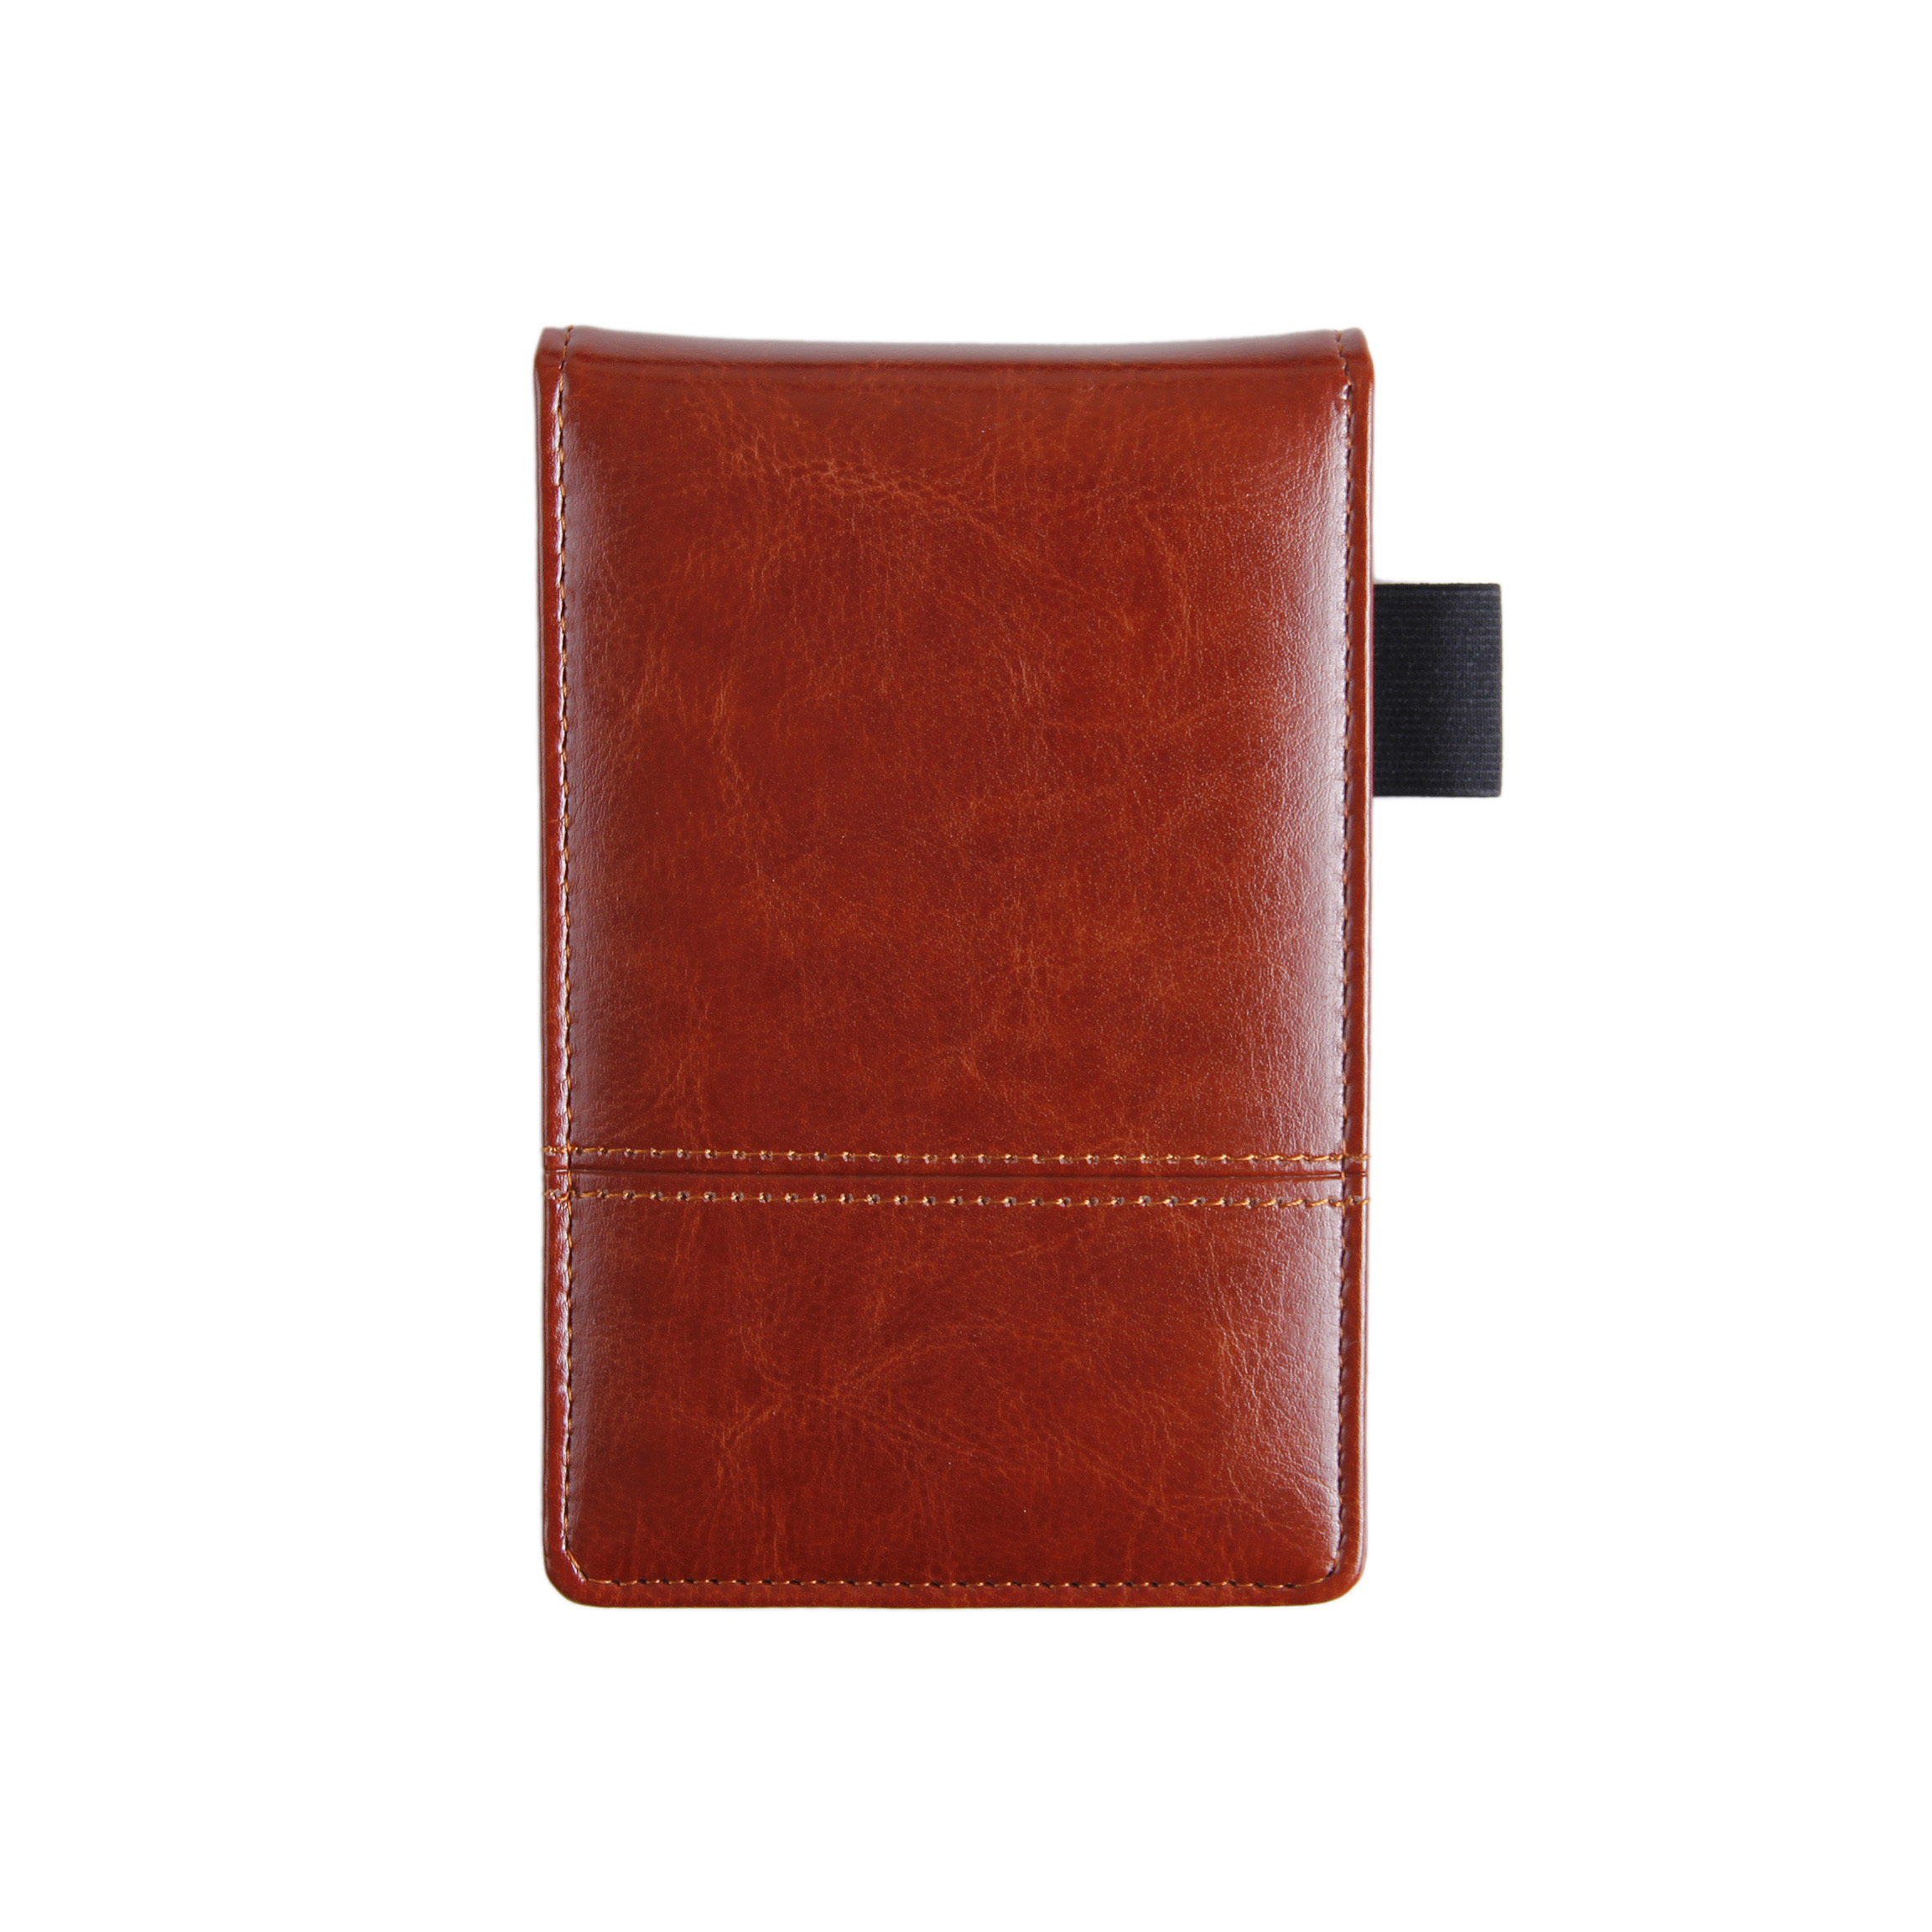 US $9 49  A7 Portable PU Memo Pad with Calculator, Multifunction Pocket  Size PU Notepad with Pen Holder, Business Office Supplies-in Memo Pads from